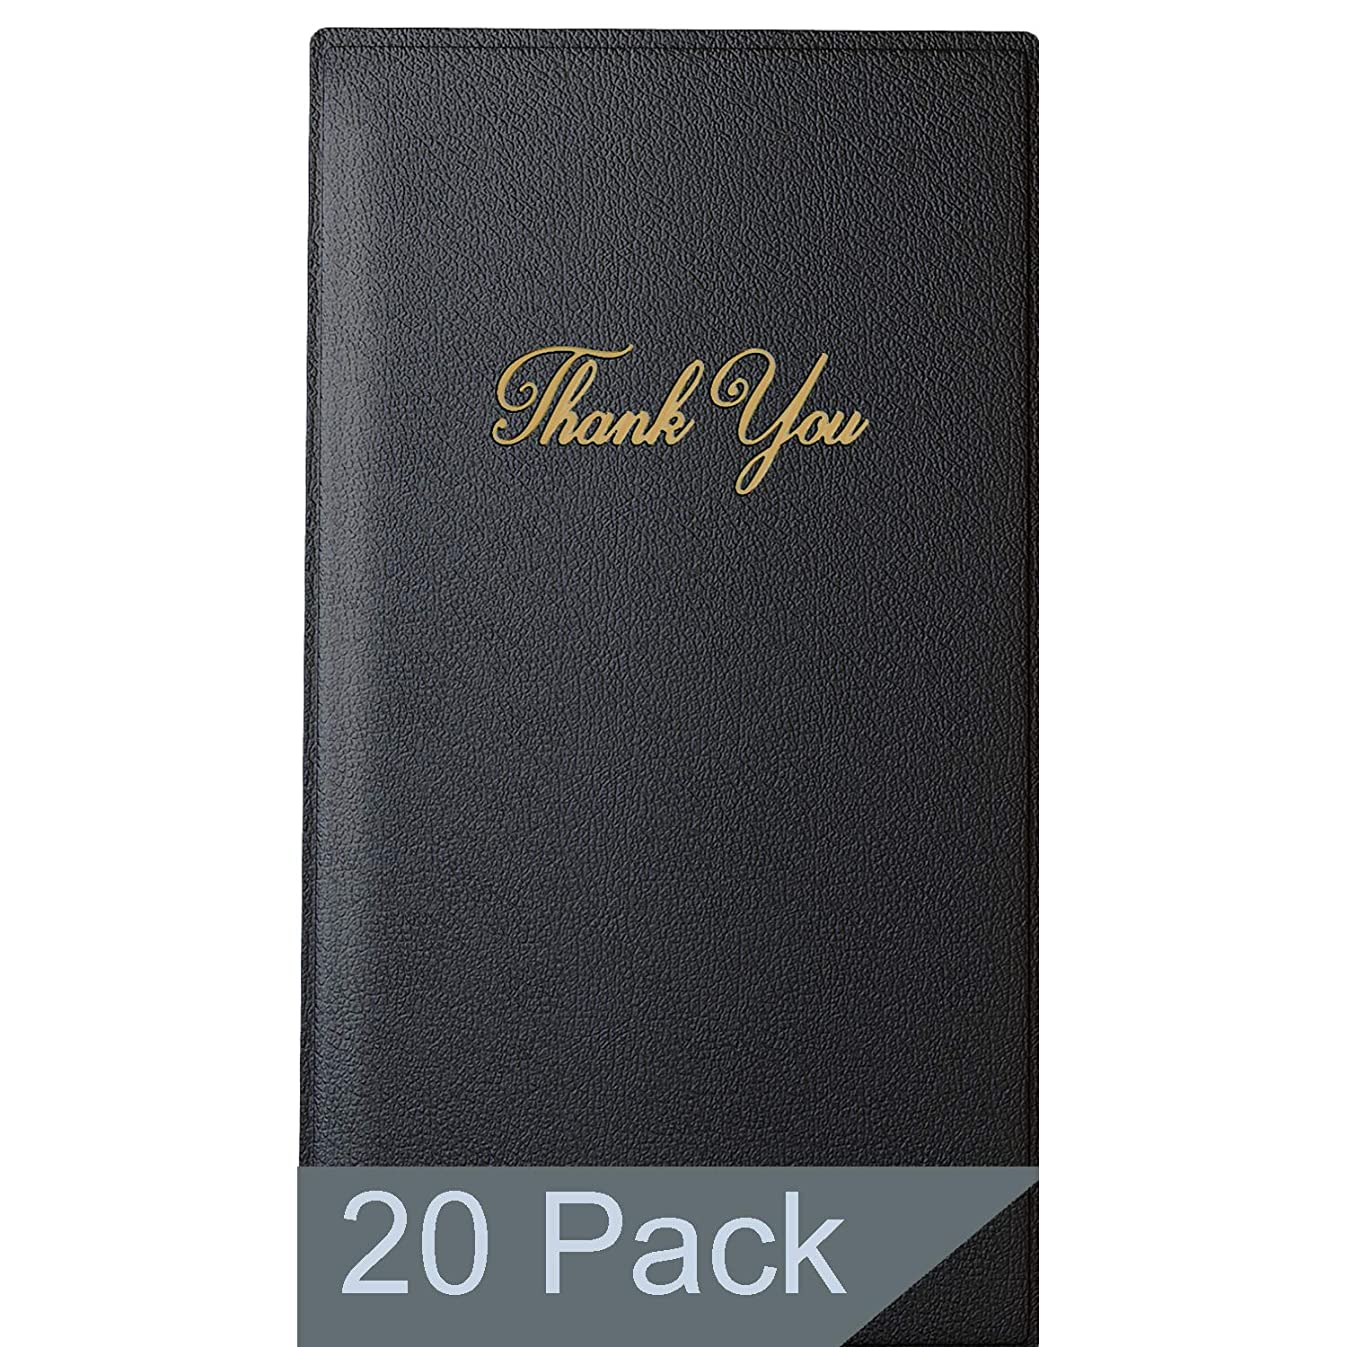 Restaurant Check Presenters - Guest Check Card Holder with Gold Thank You Imprint - 5.5